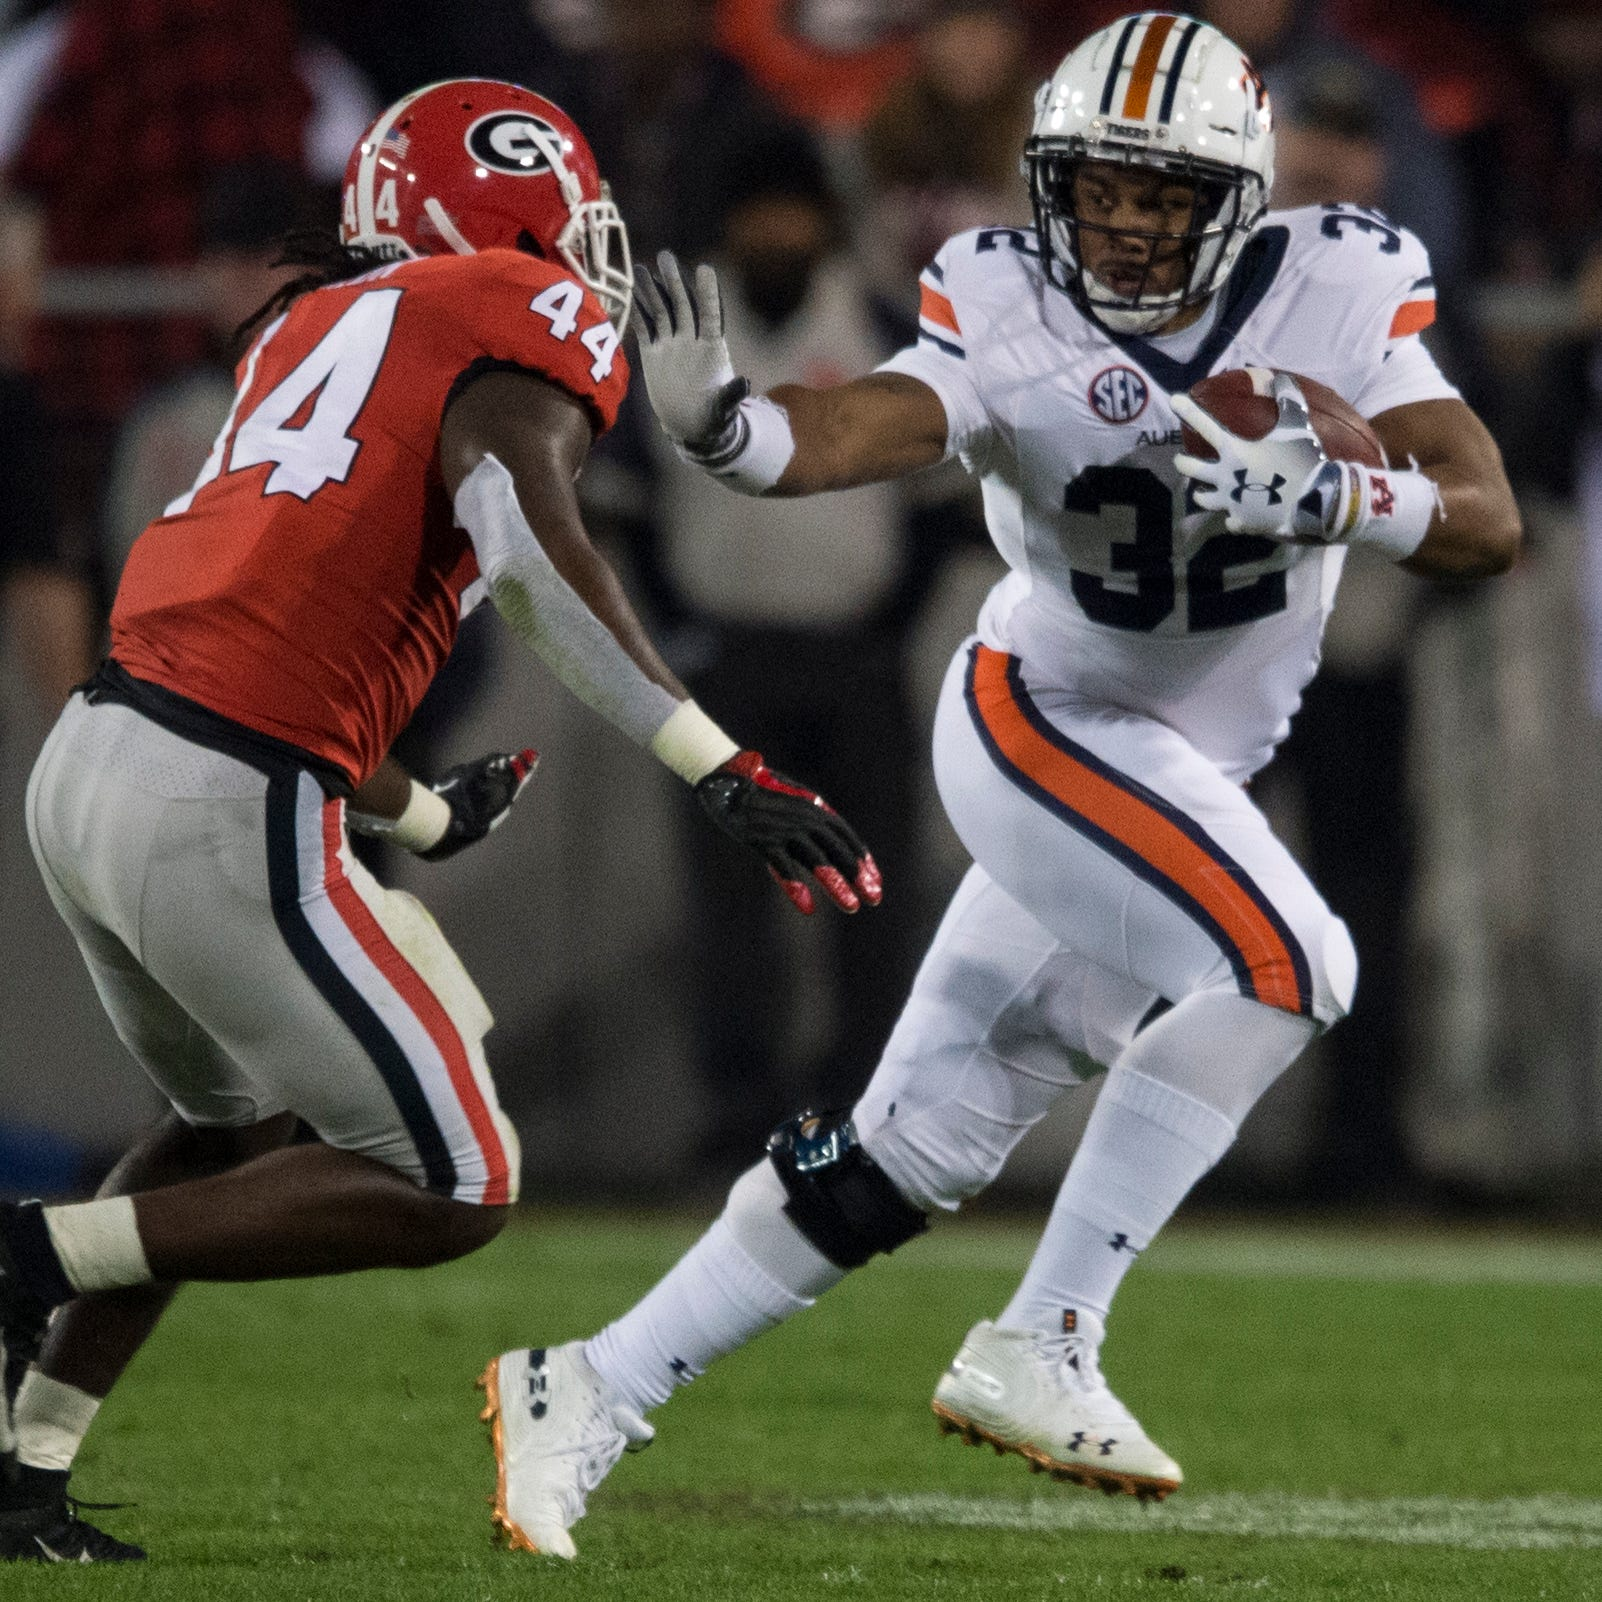 Auburn running back Malik Miller (32) stiff arms Georgia linebacker Juwan Taylor (44) at Sanford Stadium in Athens, Ga., on Saturday, Nov. 10, 2018. Georgia defeated Auburn 27-10.